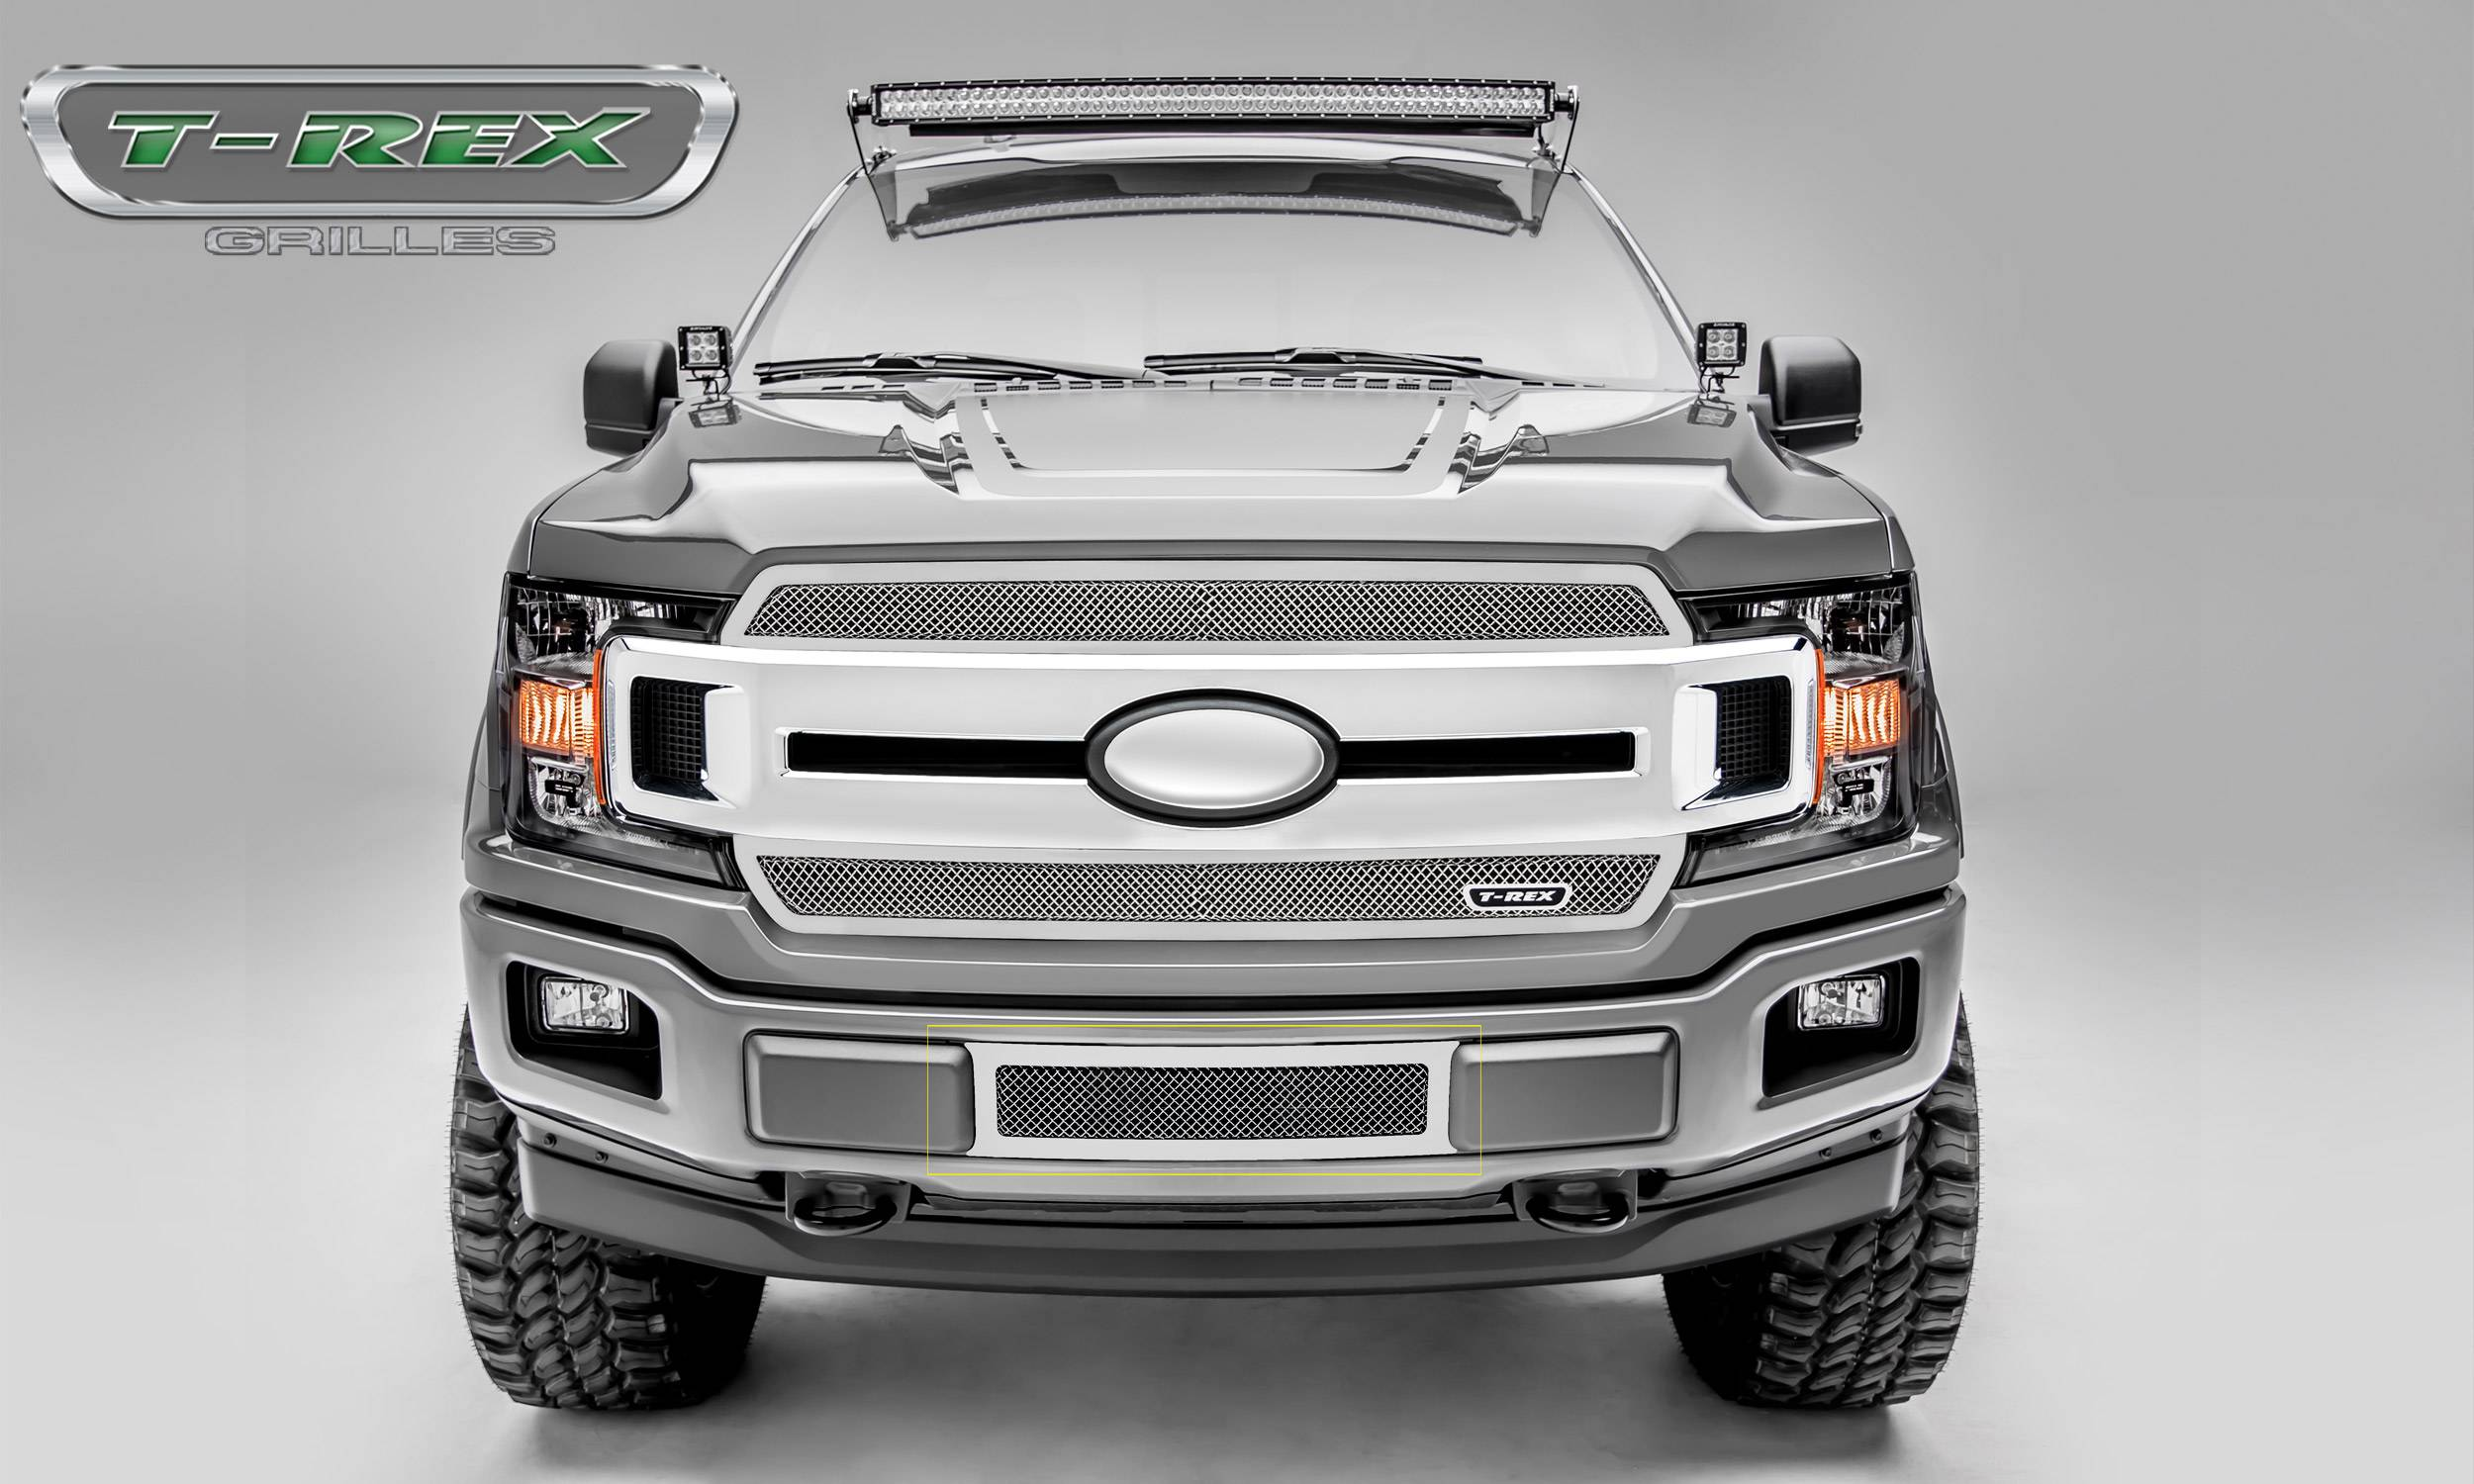 T-REX Grilles - T-REX Ford F-150 - Upper Class Series - Bumper Grille Overlay with Framed Woven Wire Mesh and Polished Stainless Steel Finish - Pt # 55710